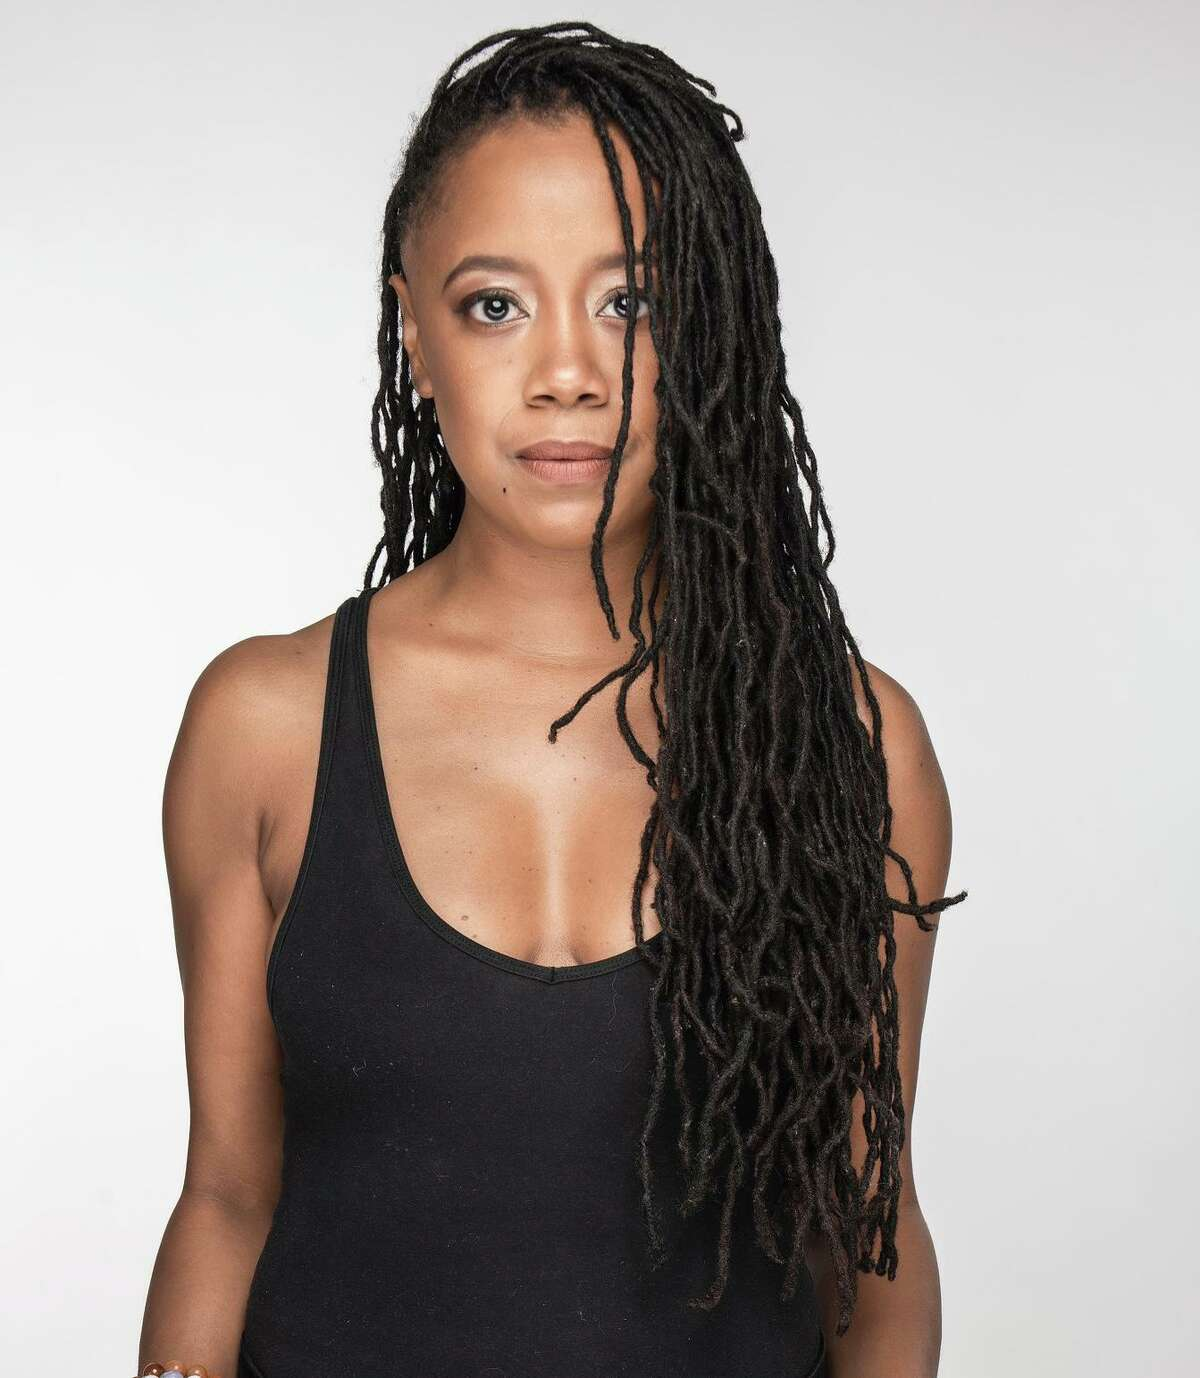 Debórah Bond is New Haven native who recently released a new album.